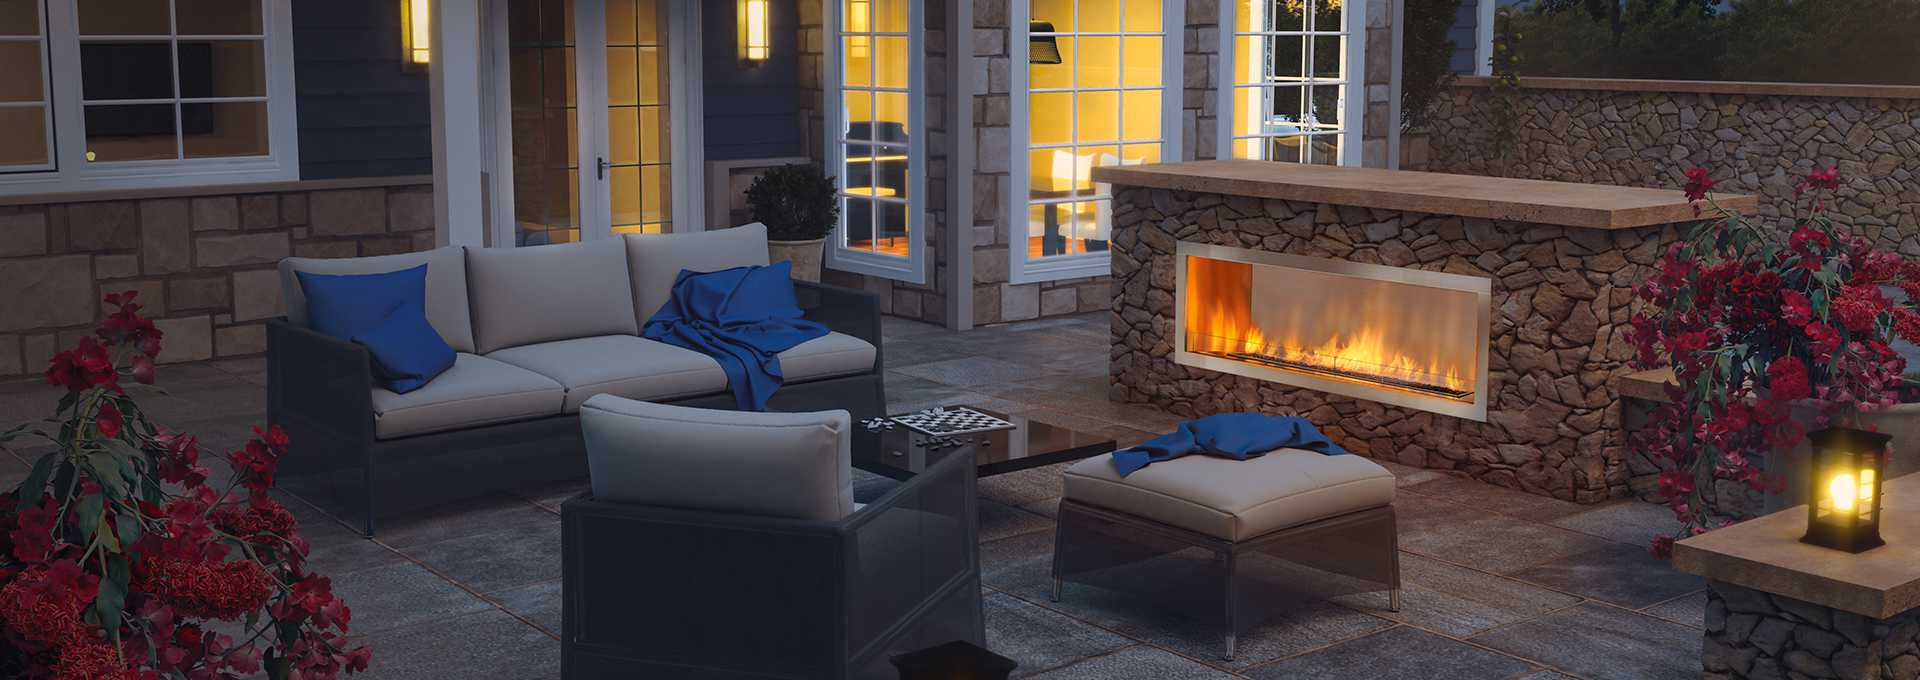 5 Features of High-Quality Outdoor Fireplaces